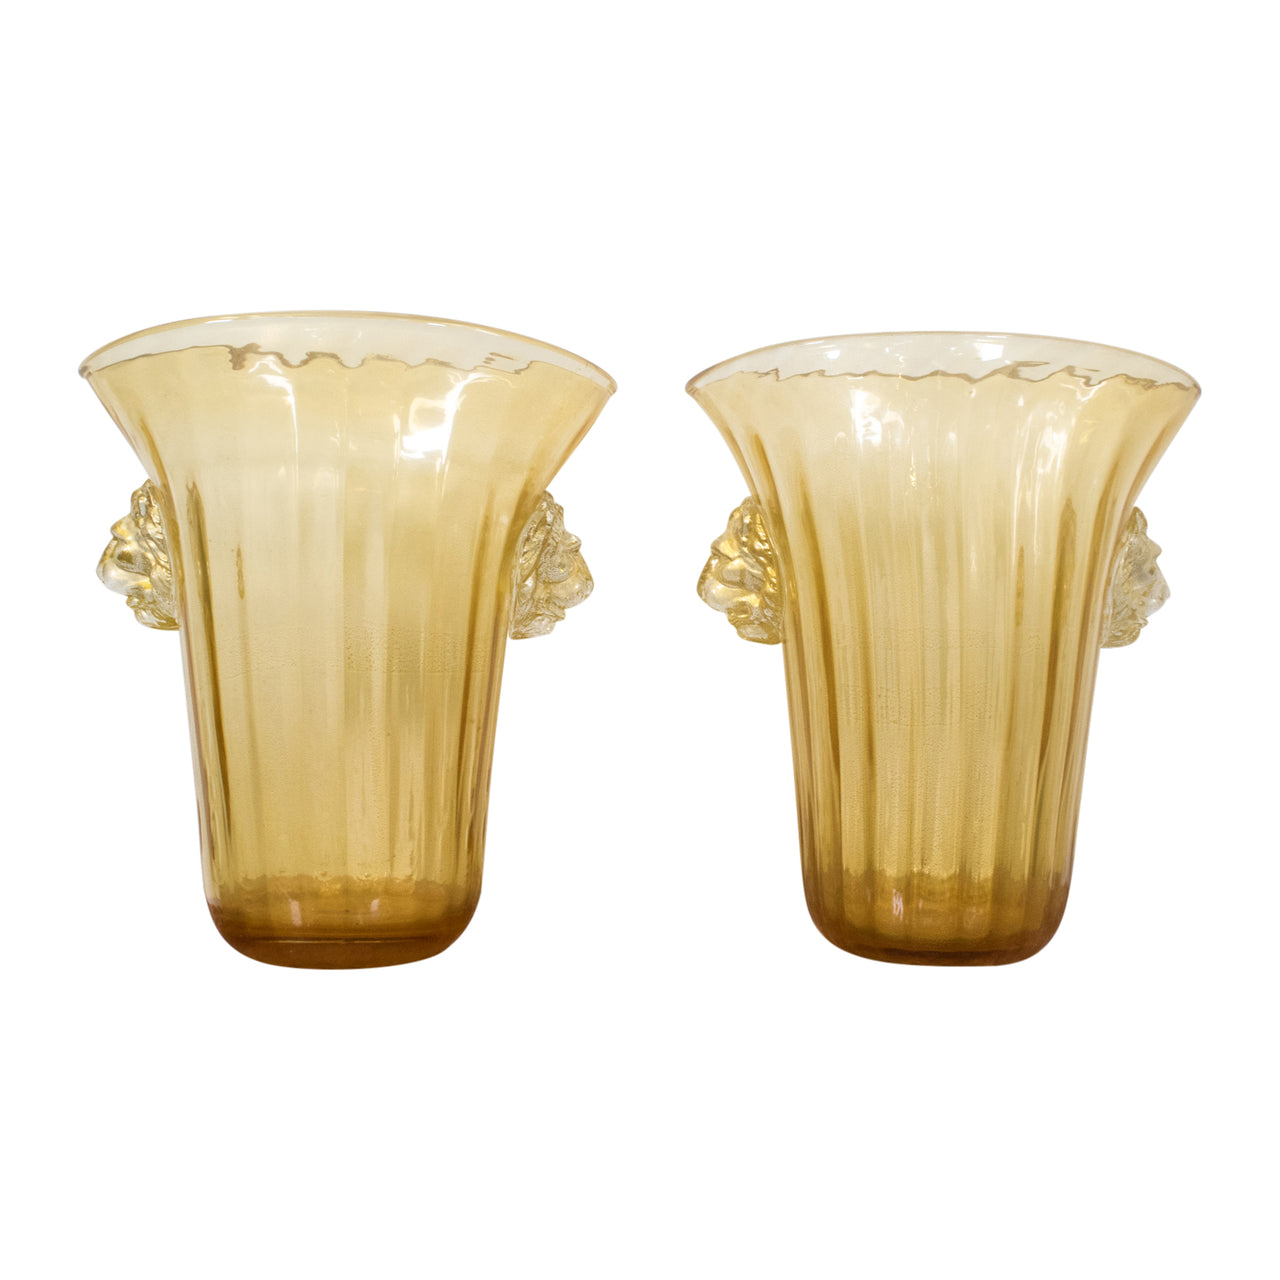 A Pair of Murano Vases by Pino Signoretto (1944-)